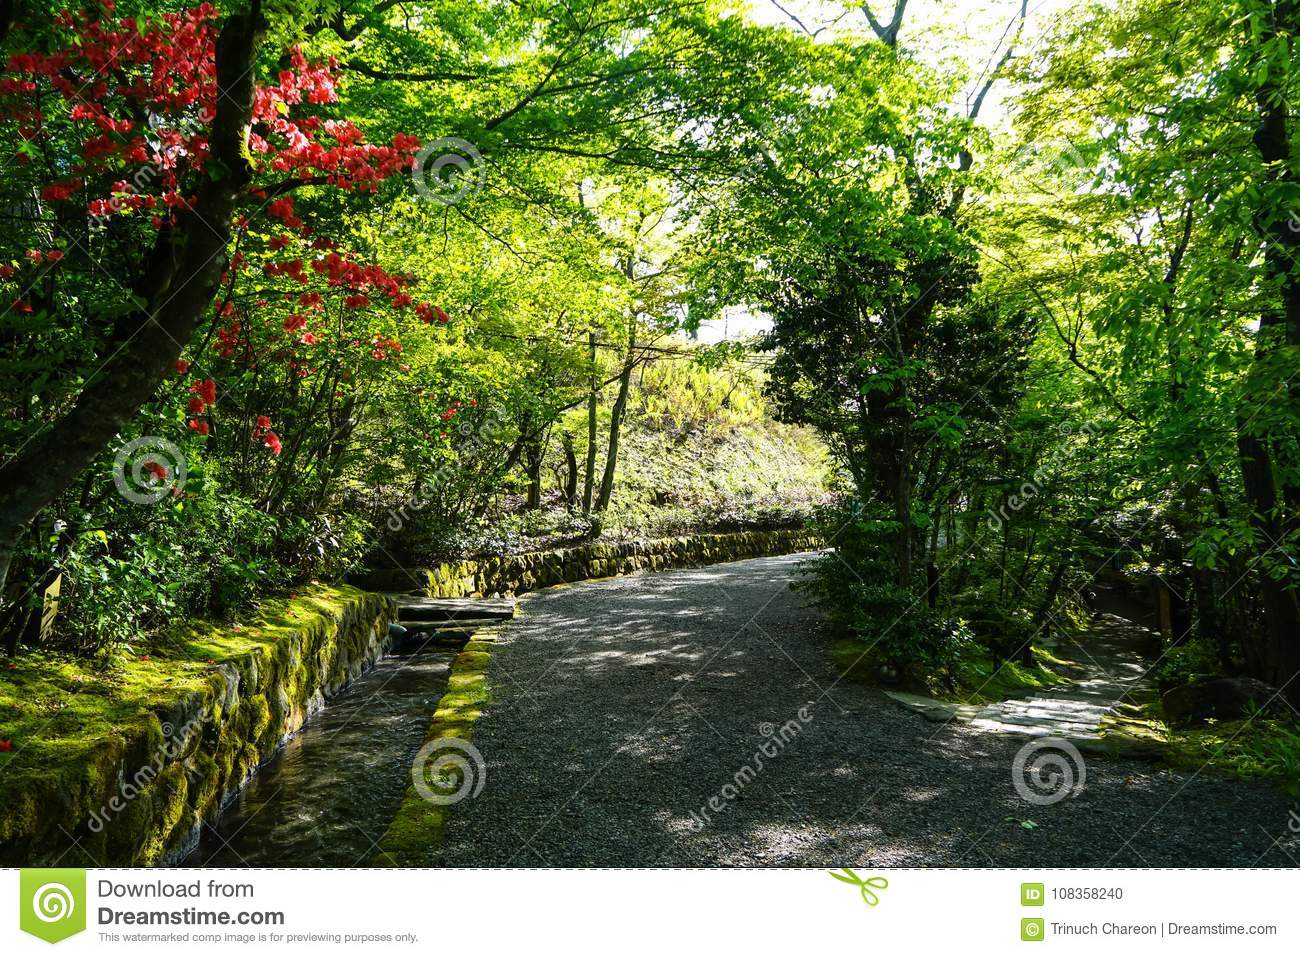 Beautiful pleasant walkway road under green tree and red flower tunnel with fresh water canal ditch cover with moss and lichen